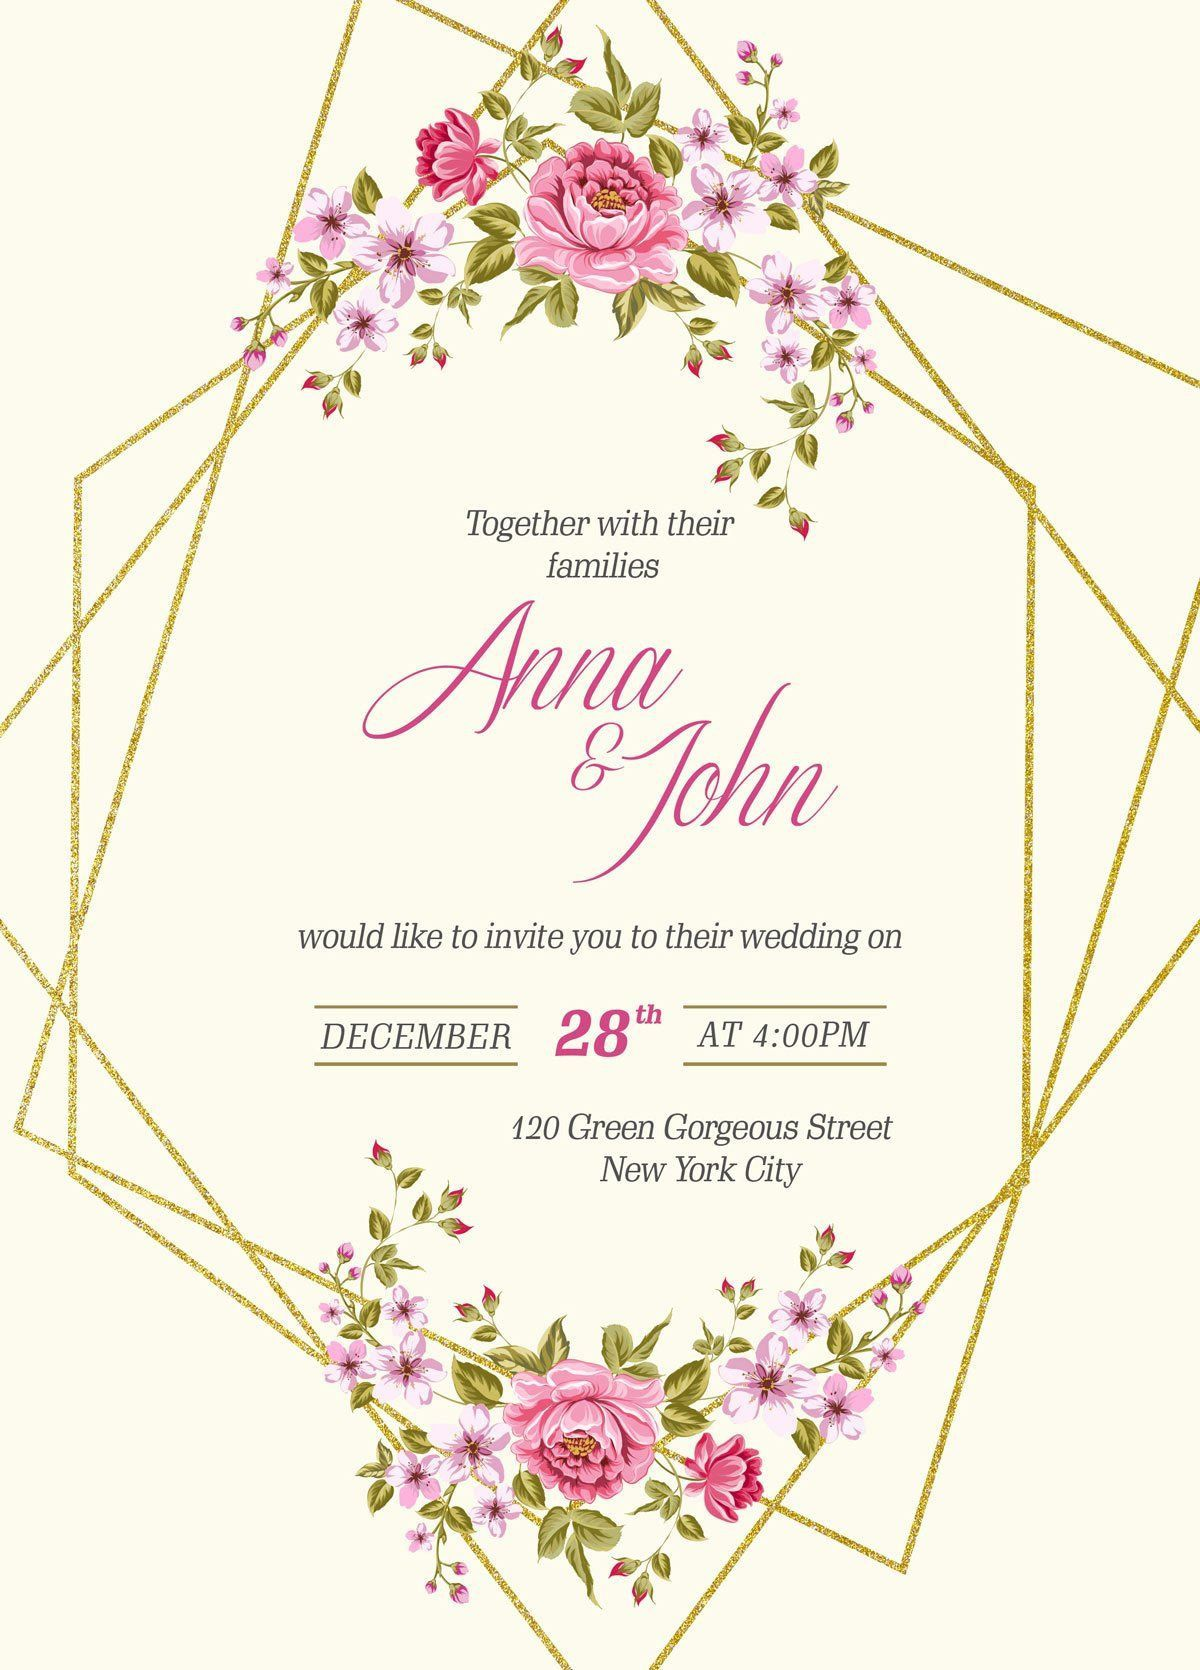 005 Wondrou Download Free Wedding Invitation Card Template Concept  Indian-traditional-wedding-invitation-card-psd-template-free-download Indian Psd FormatFull